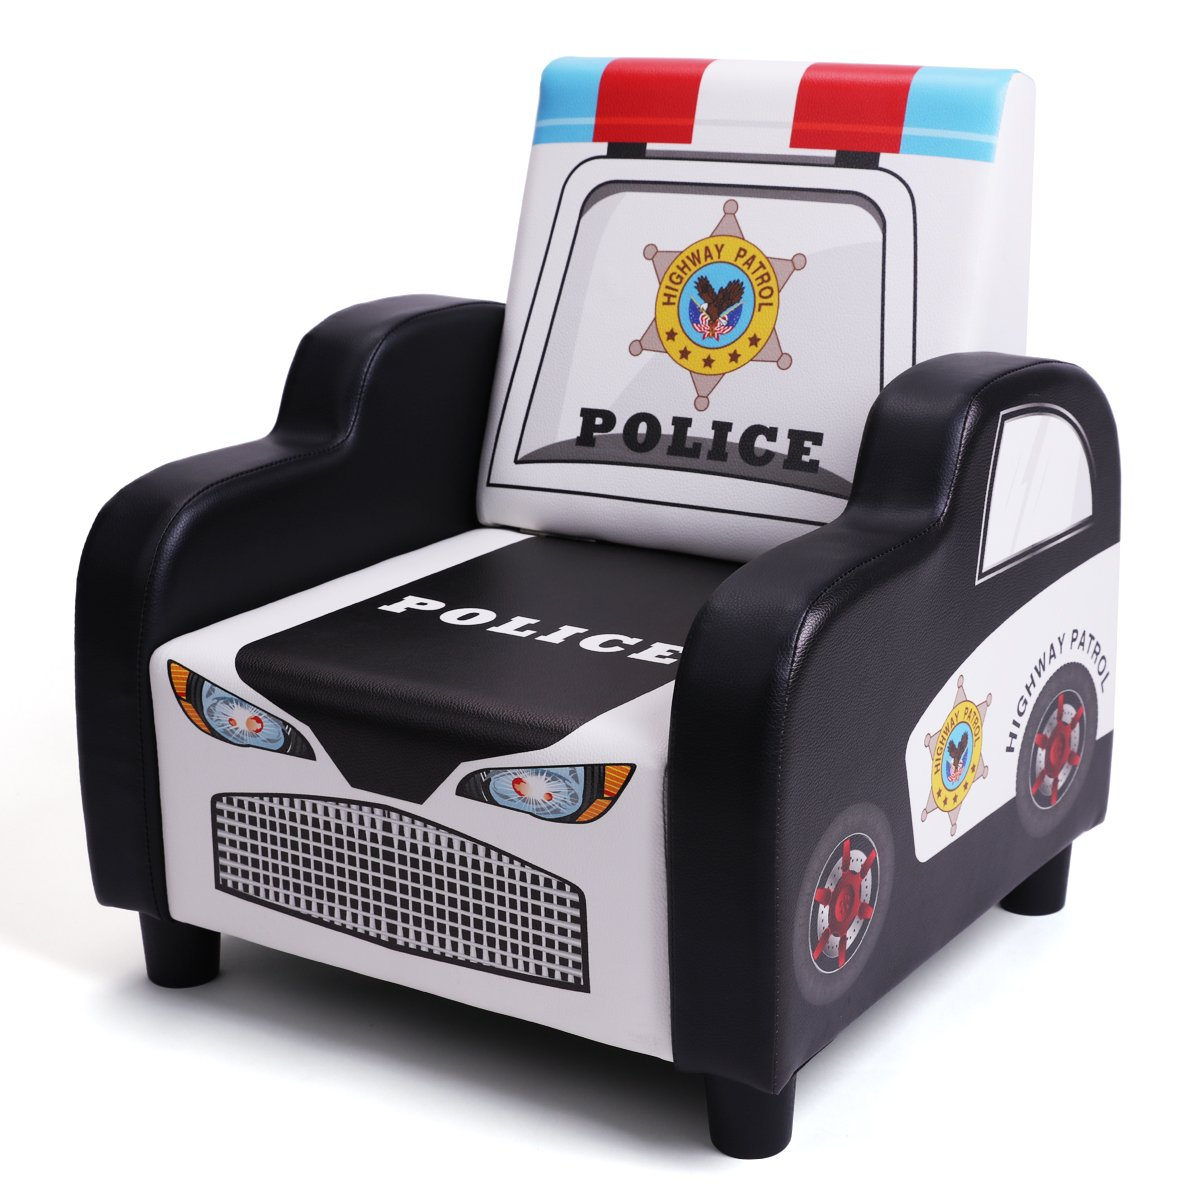 BOCCA Children's Sofa Chair,16.53'' L x 16.53'' W x 18.5'' H Ideal for Children 3 to 7 Age, Black PVC Police Car Shape Kid's Sofa